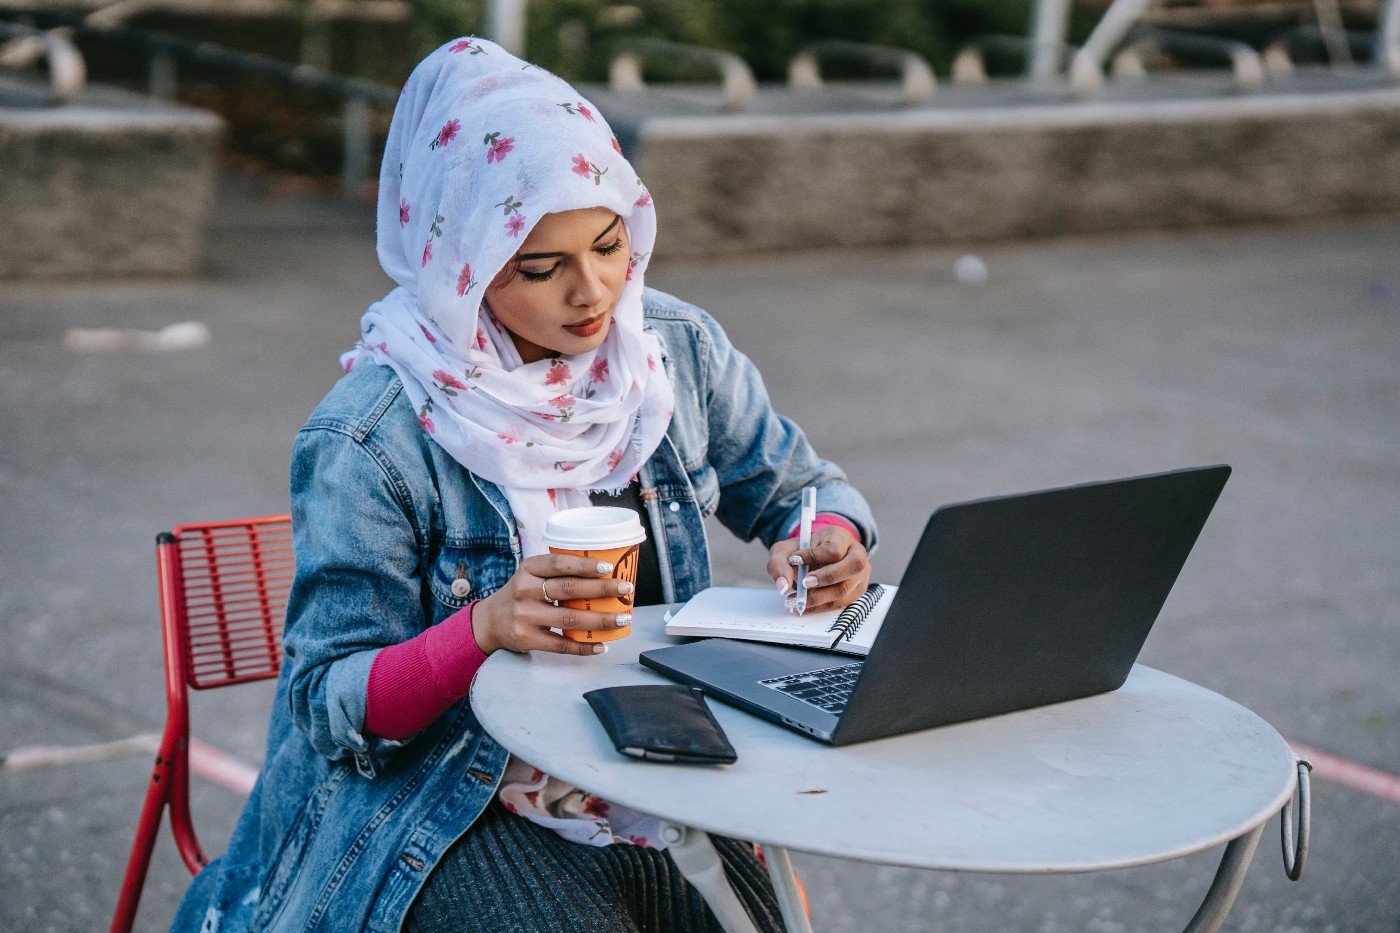 Muslim woman sitting at a table outside. She is working on her laptop while holding a coffee and a pen.